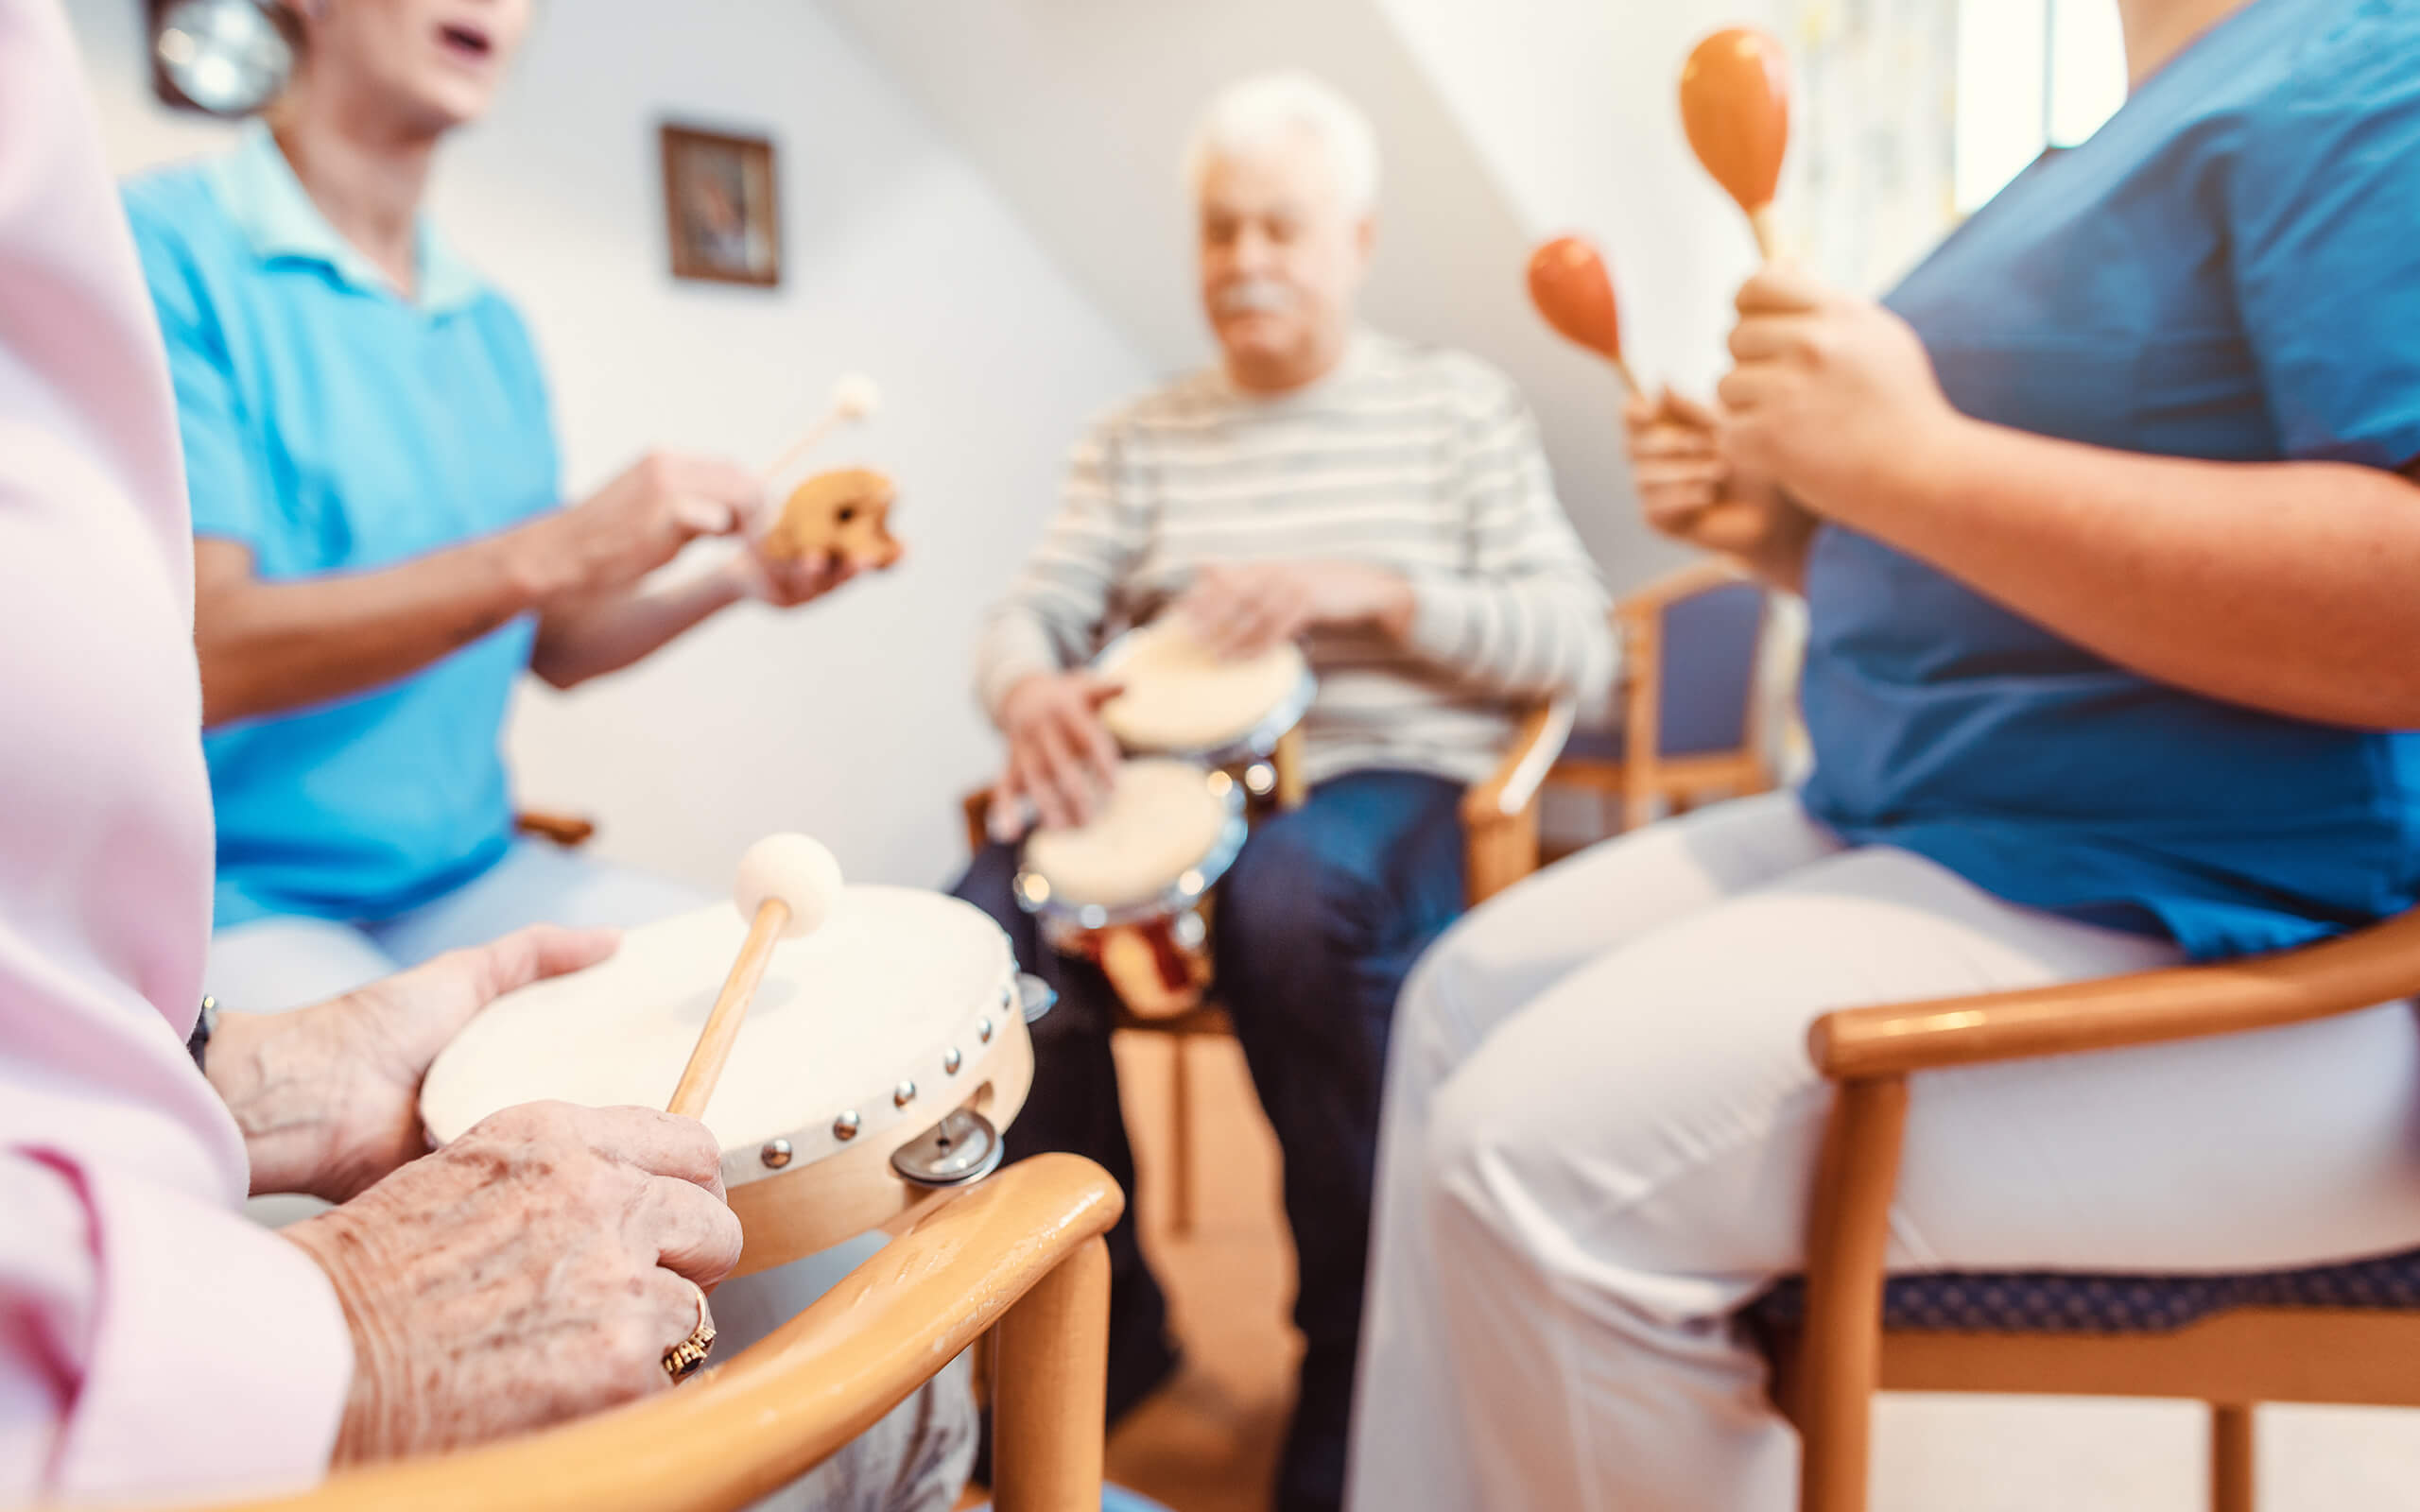 older people in a nursing home sitting down playing simple musical instruments